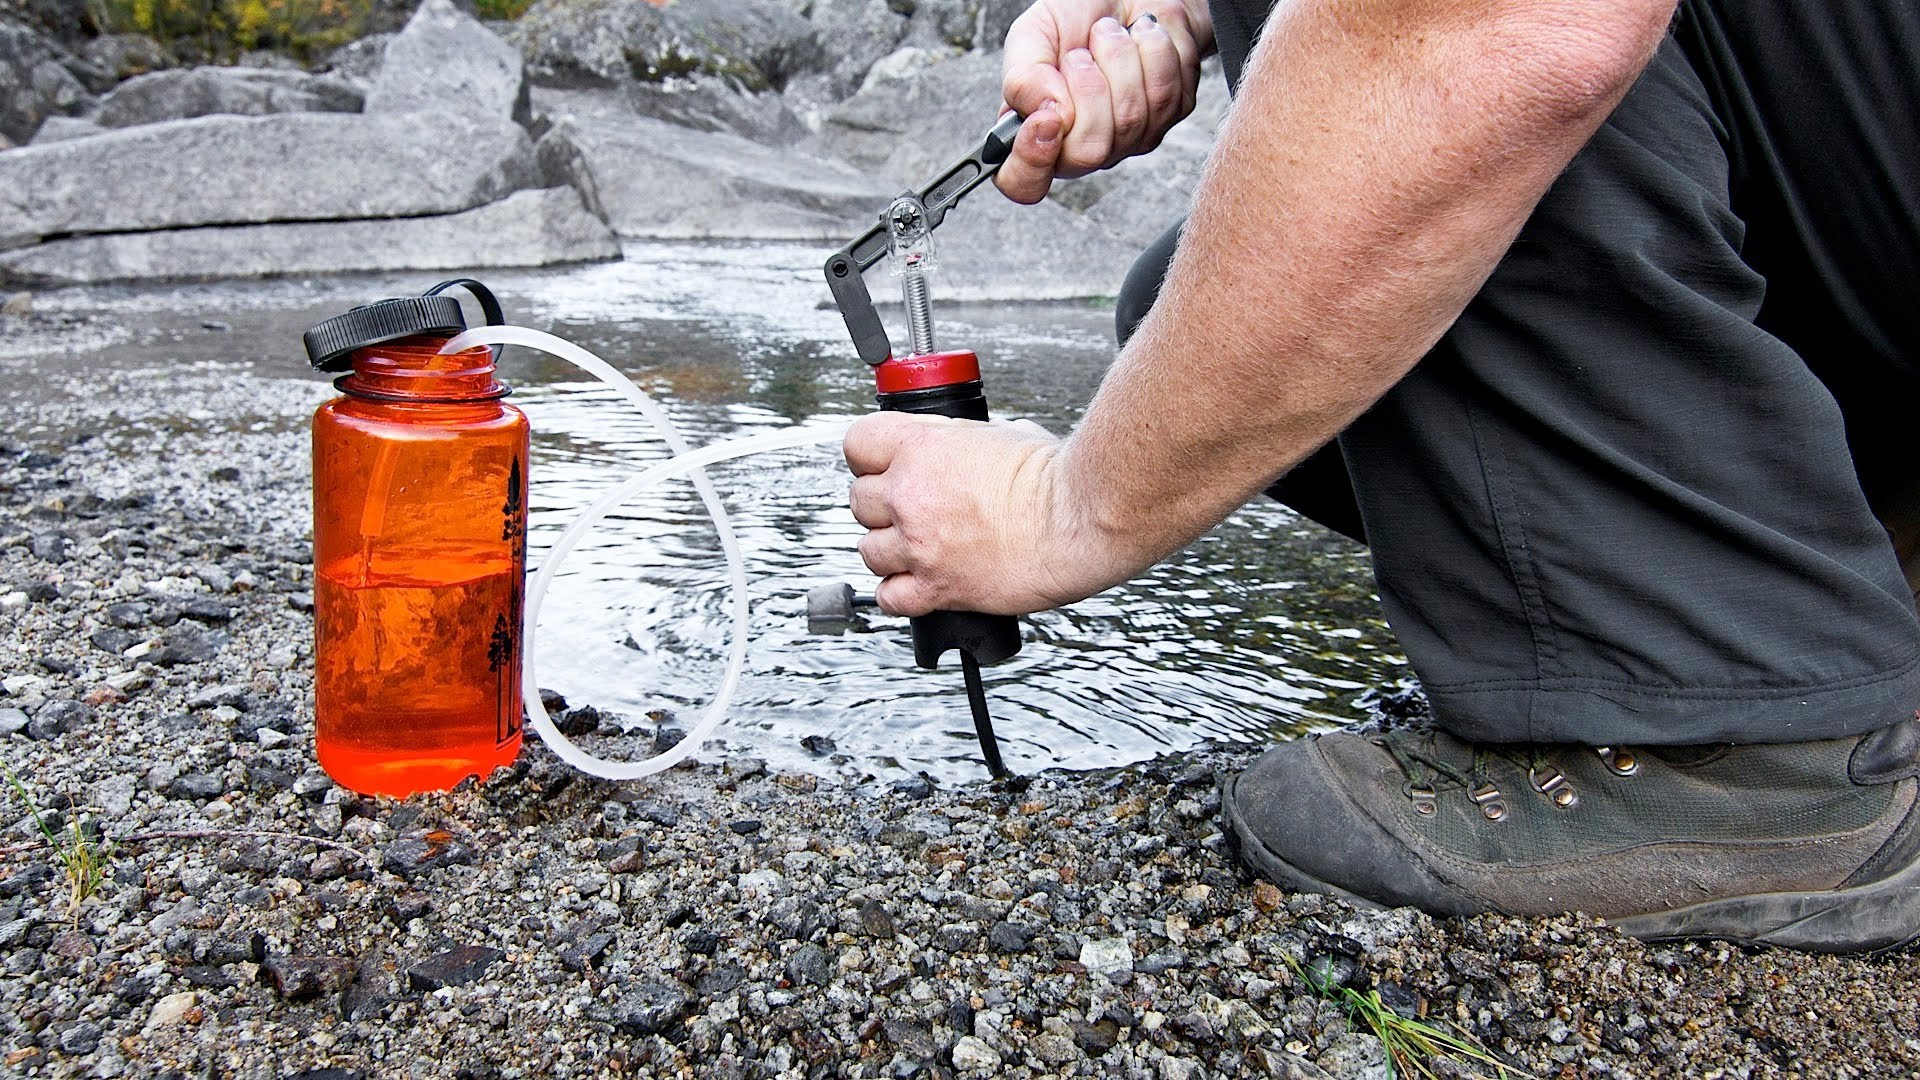 A water filter is a must have for your go bag